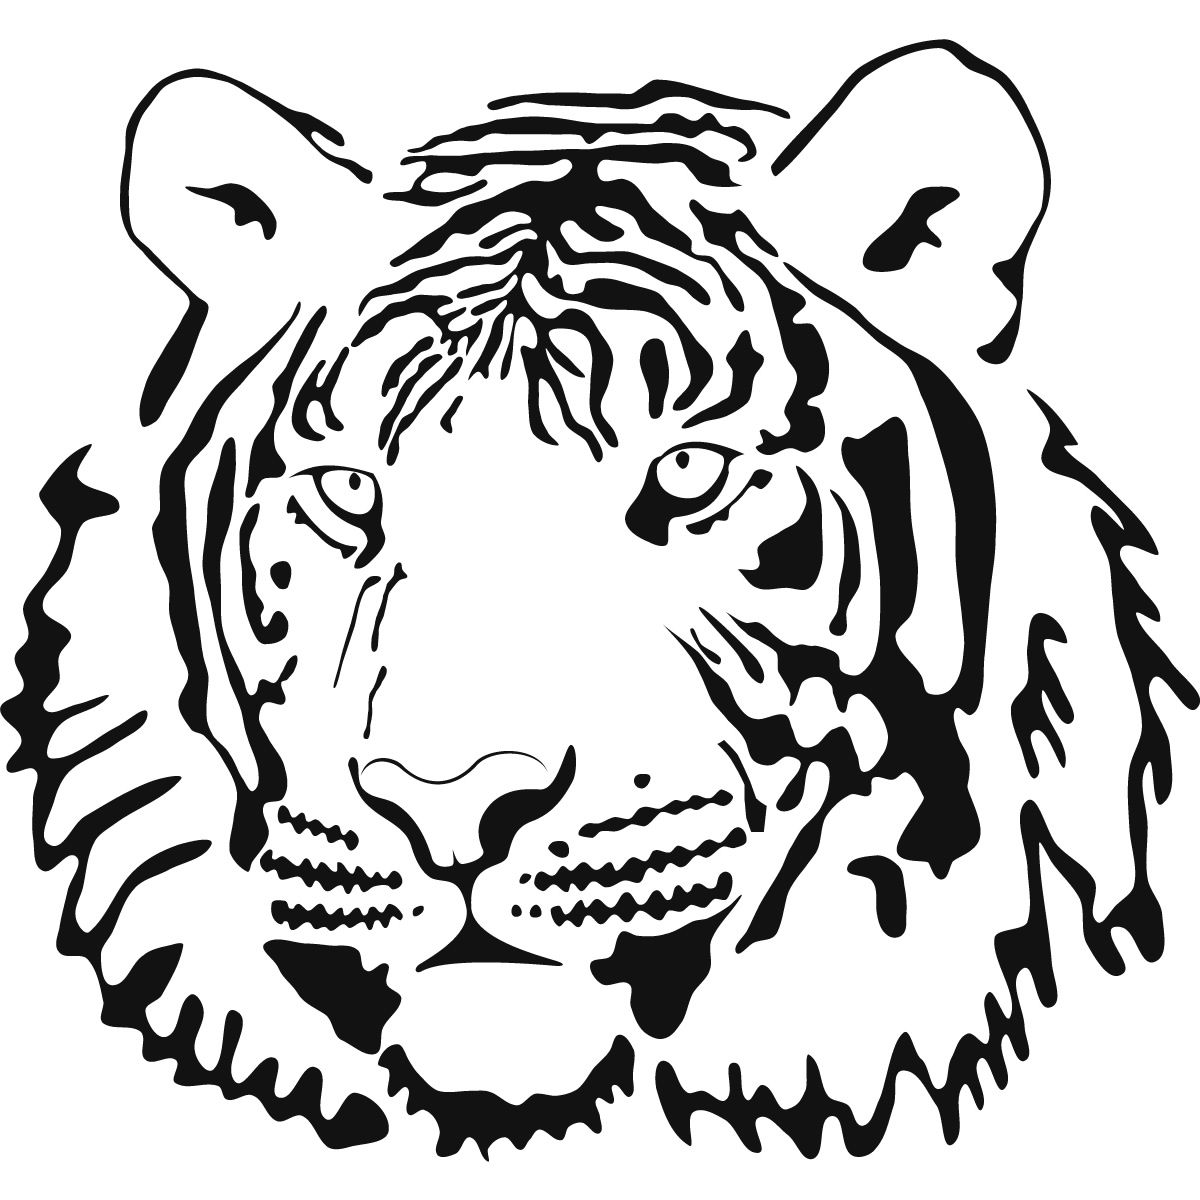 Best Photos of Tiger Outline Coloring Page - Cute Tiger Clip Art ...